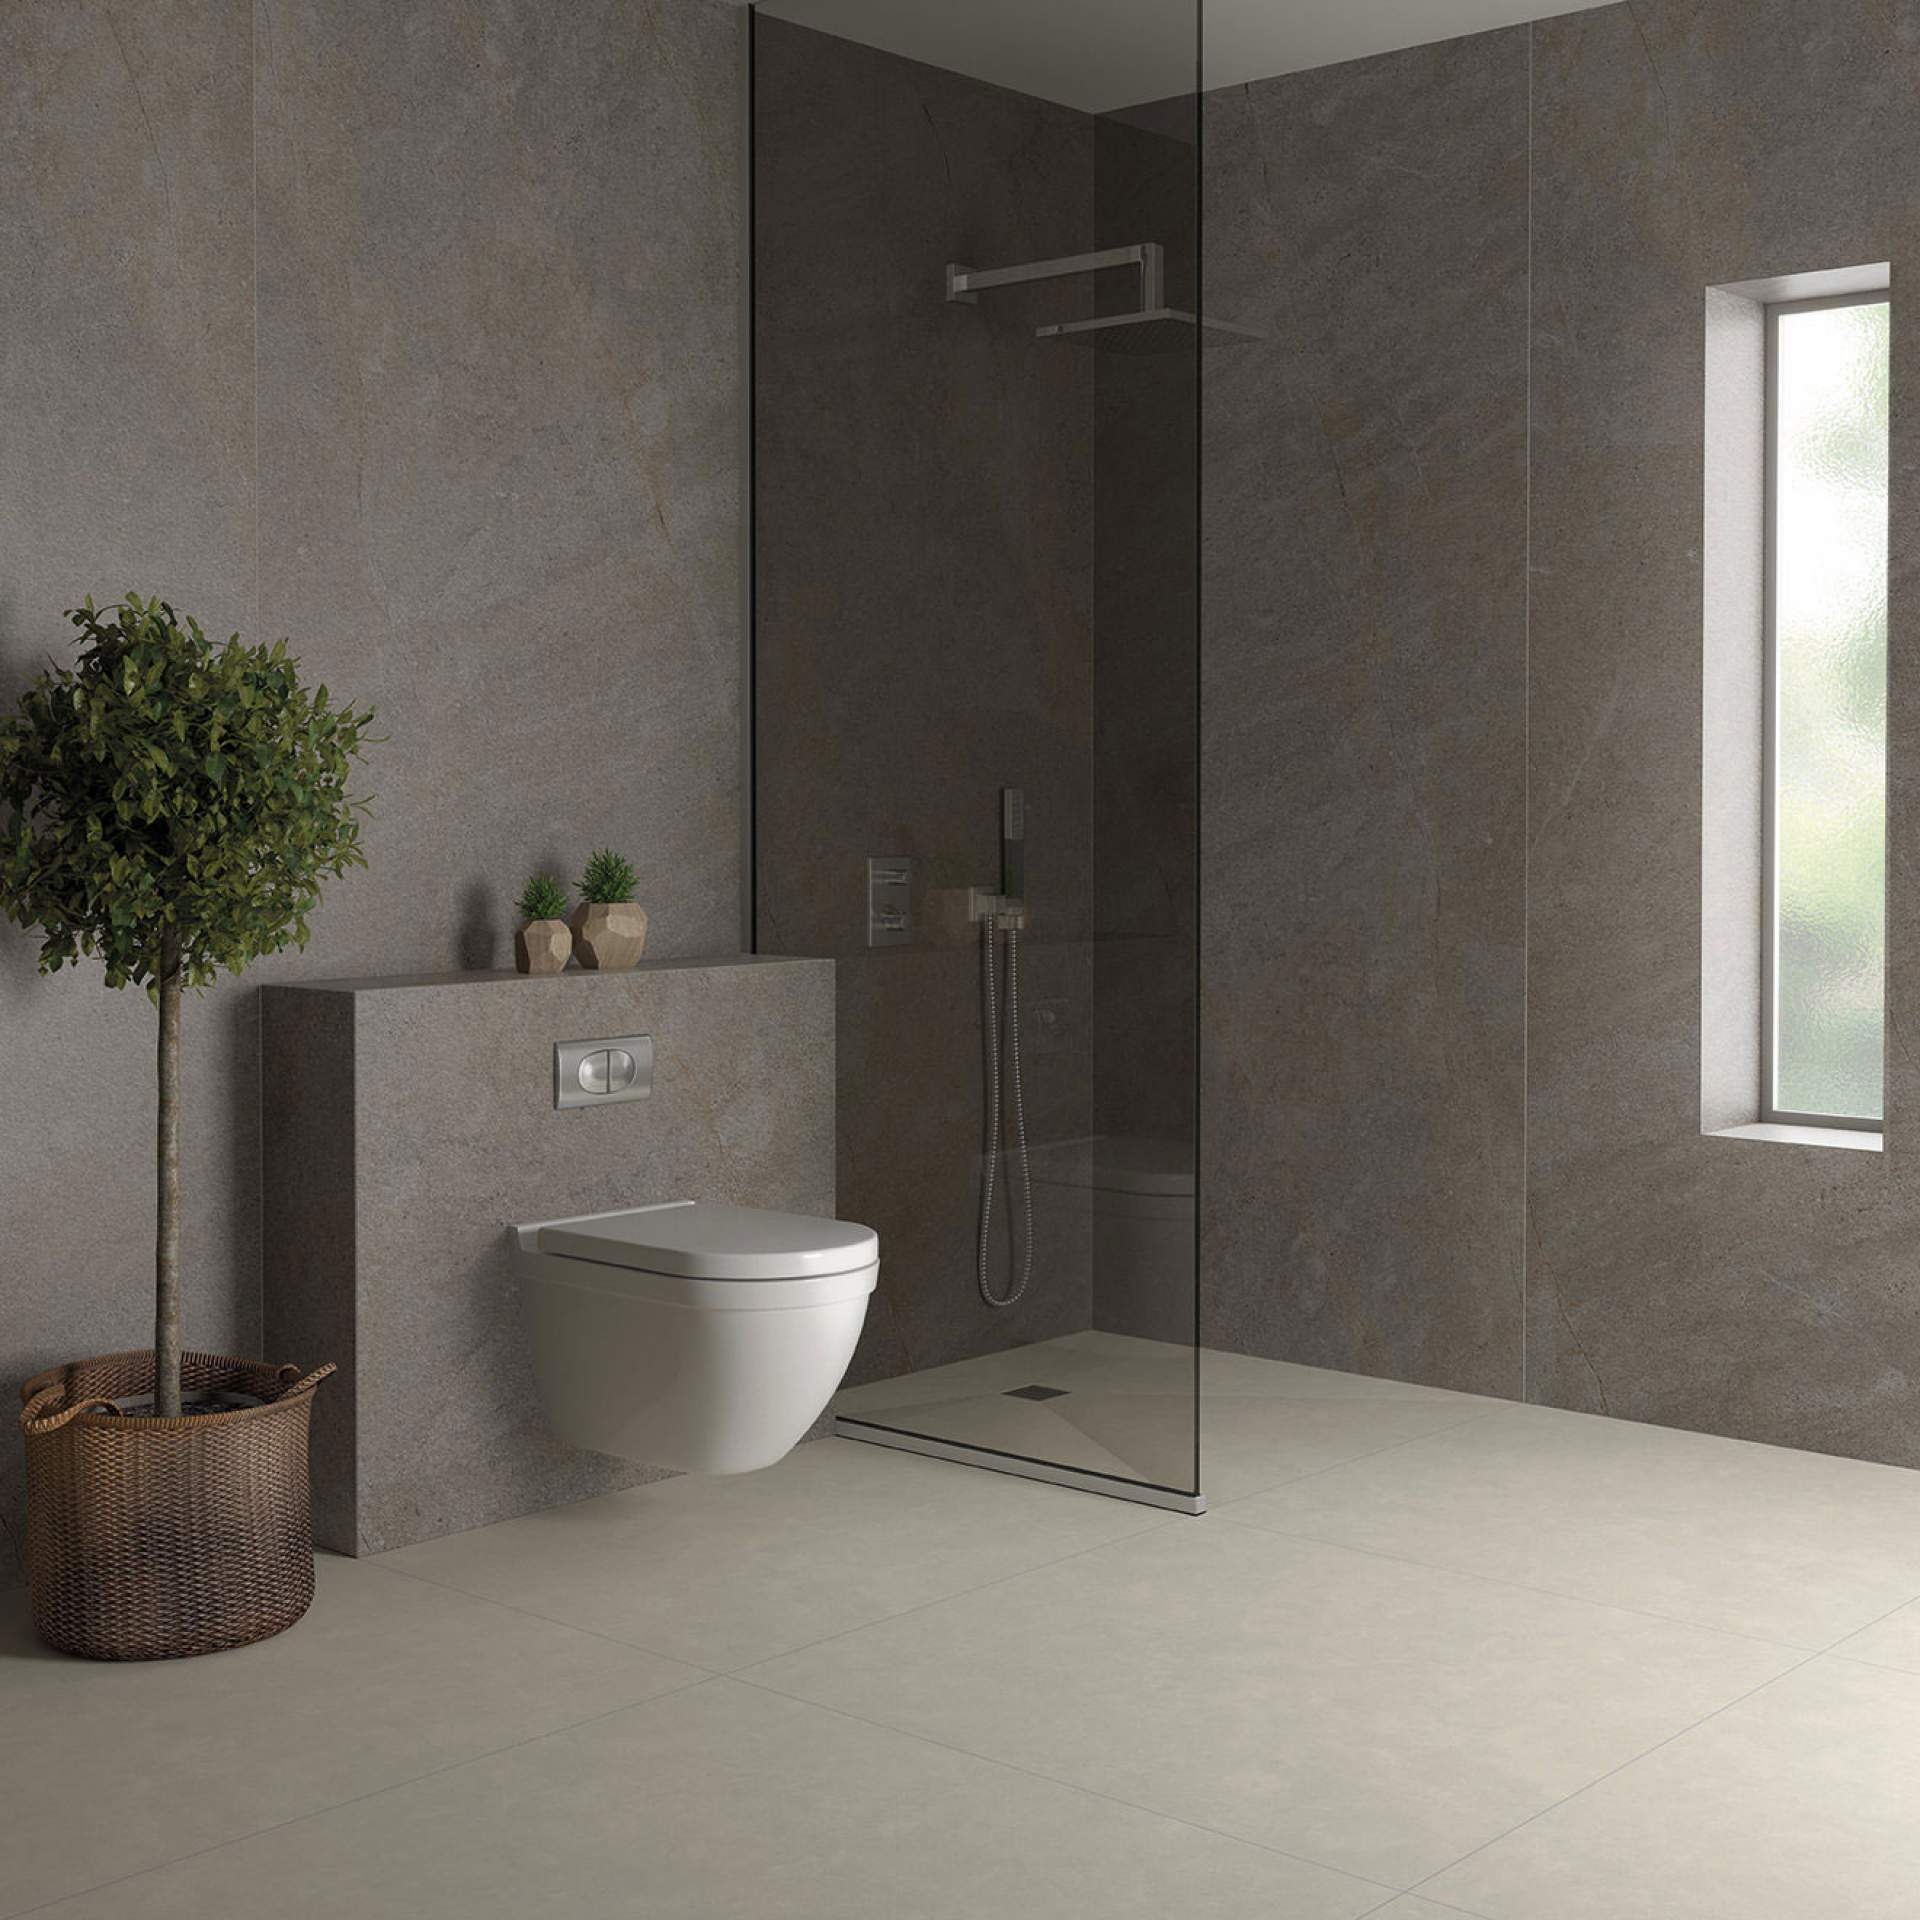 Evoke Bathroom setting with Moka Tile